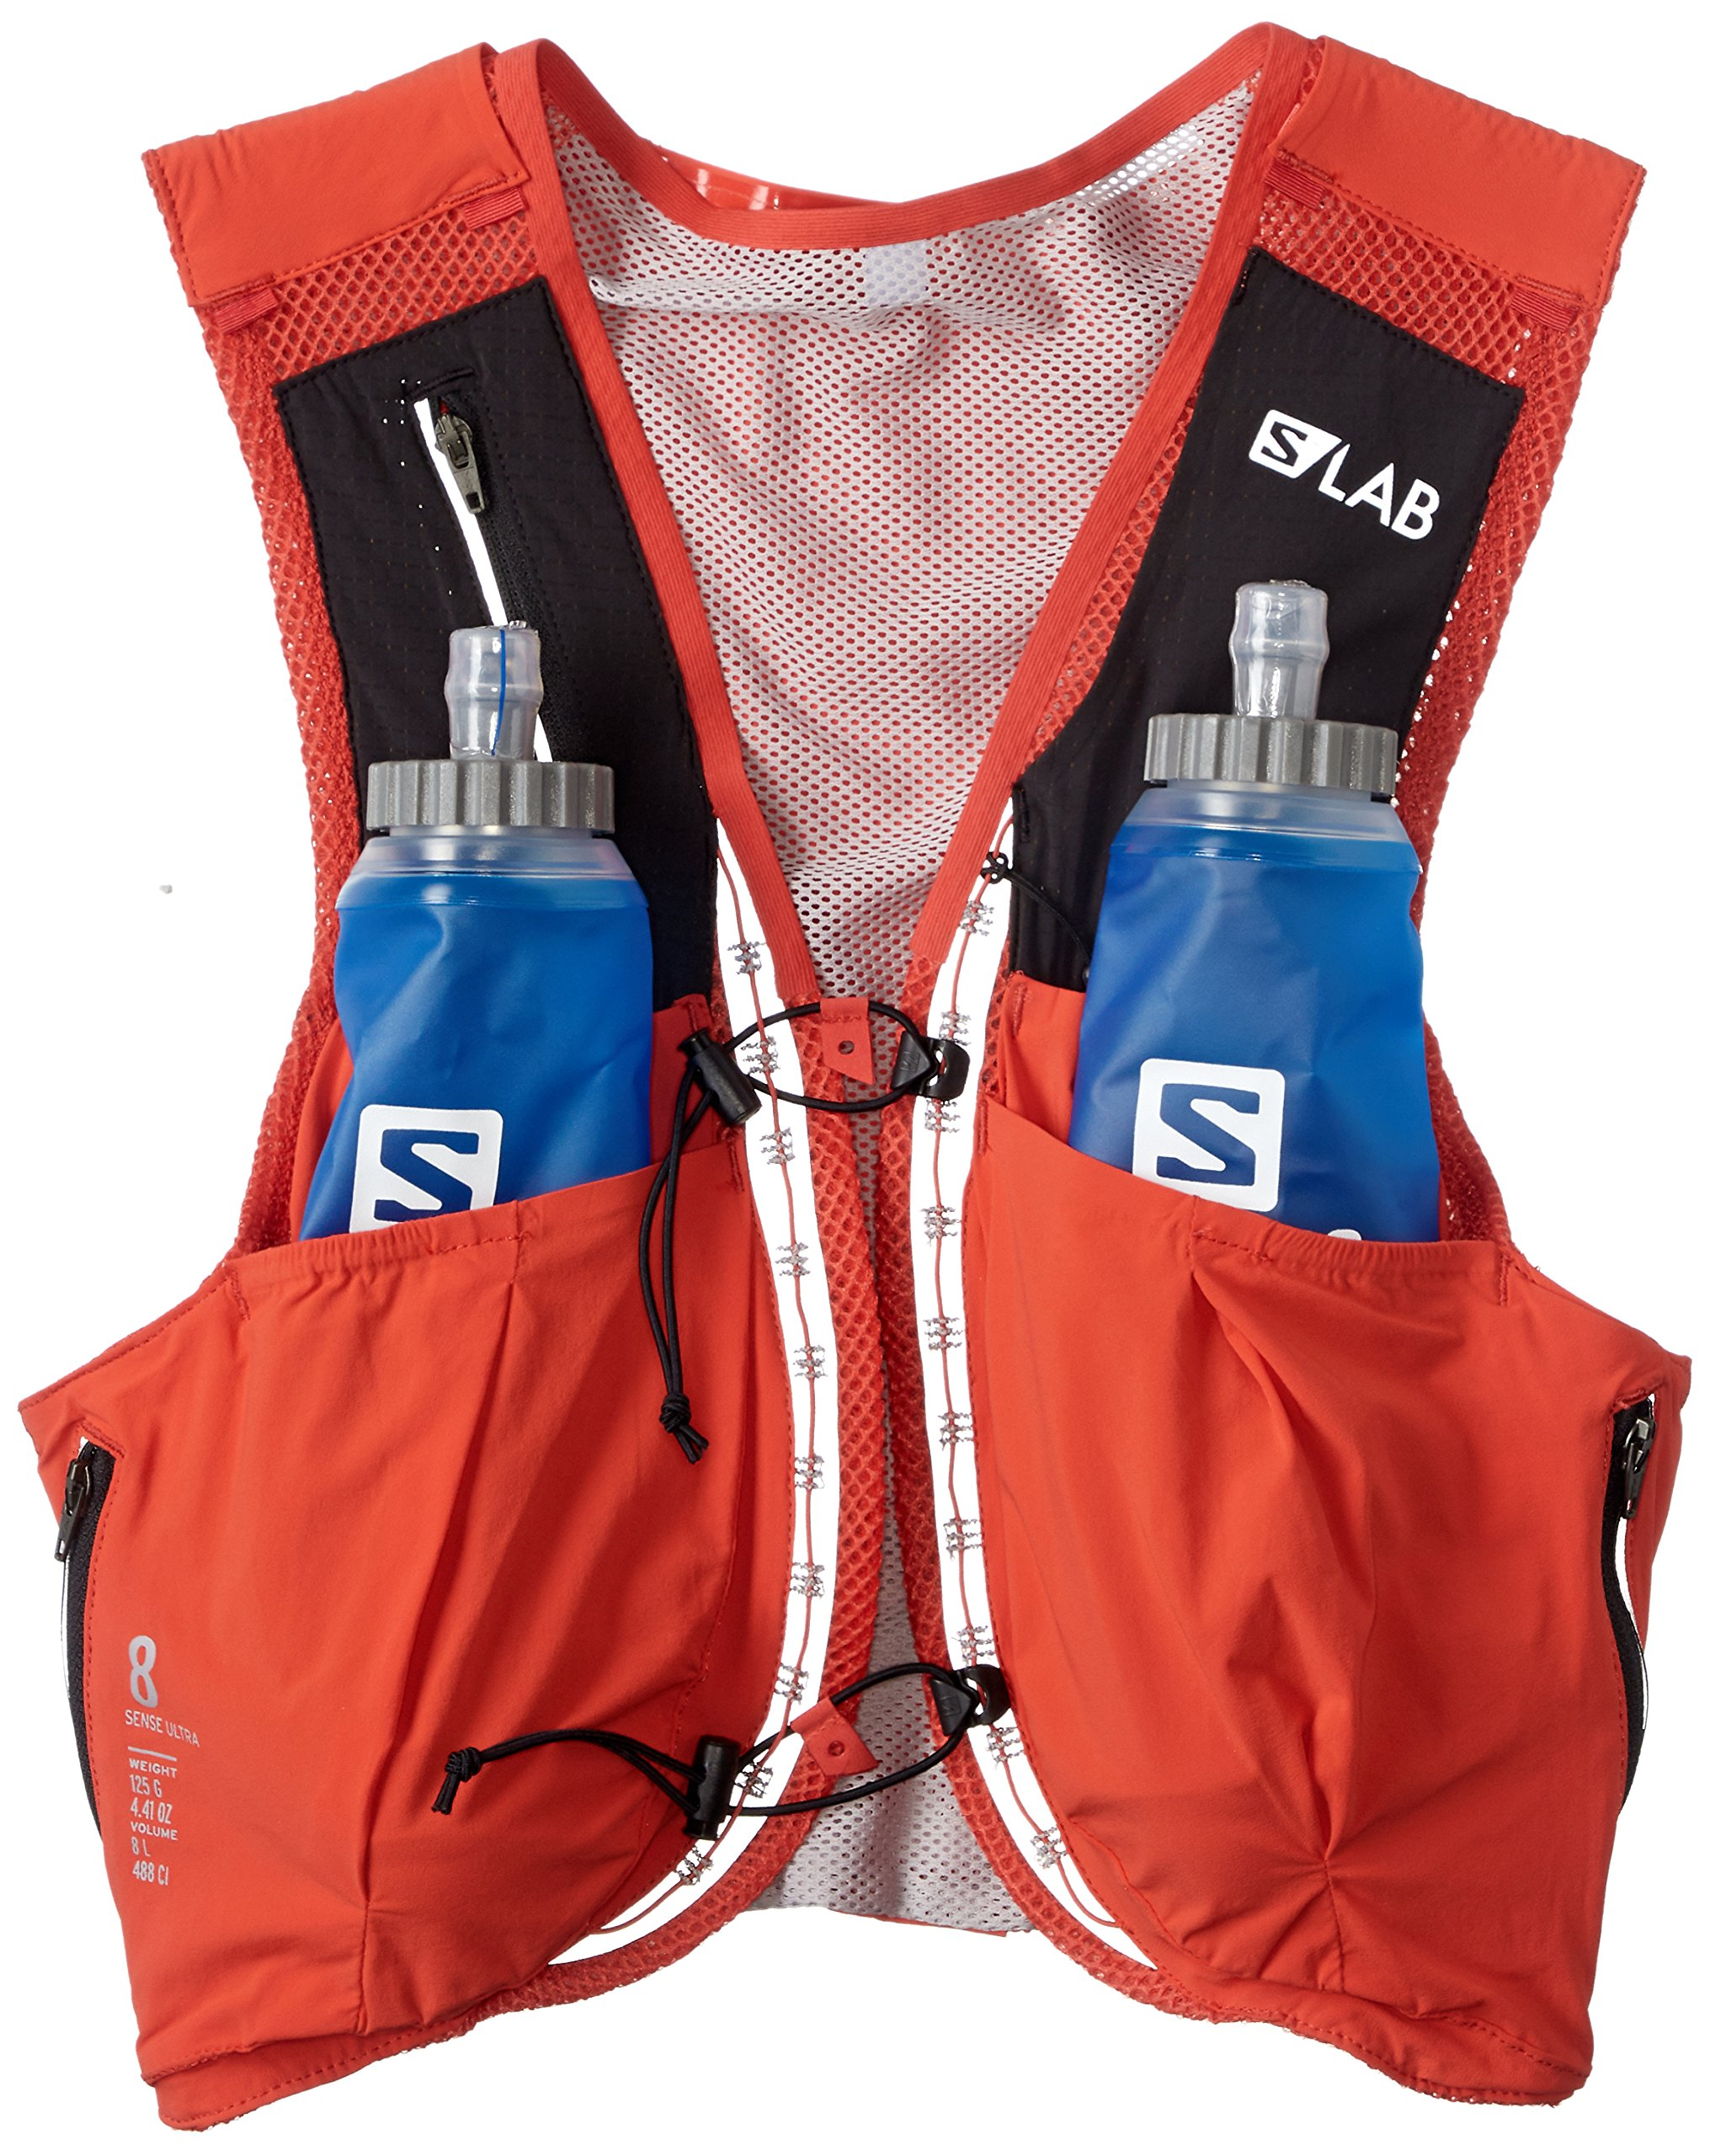 Salomon Unisex S/Lab Sense Ultra 8 Set Hydration Vest, Racing Red, Medium